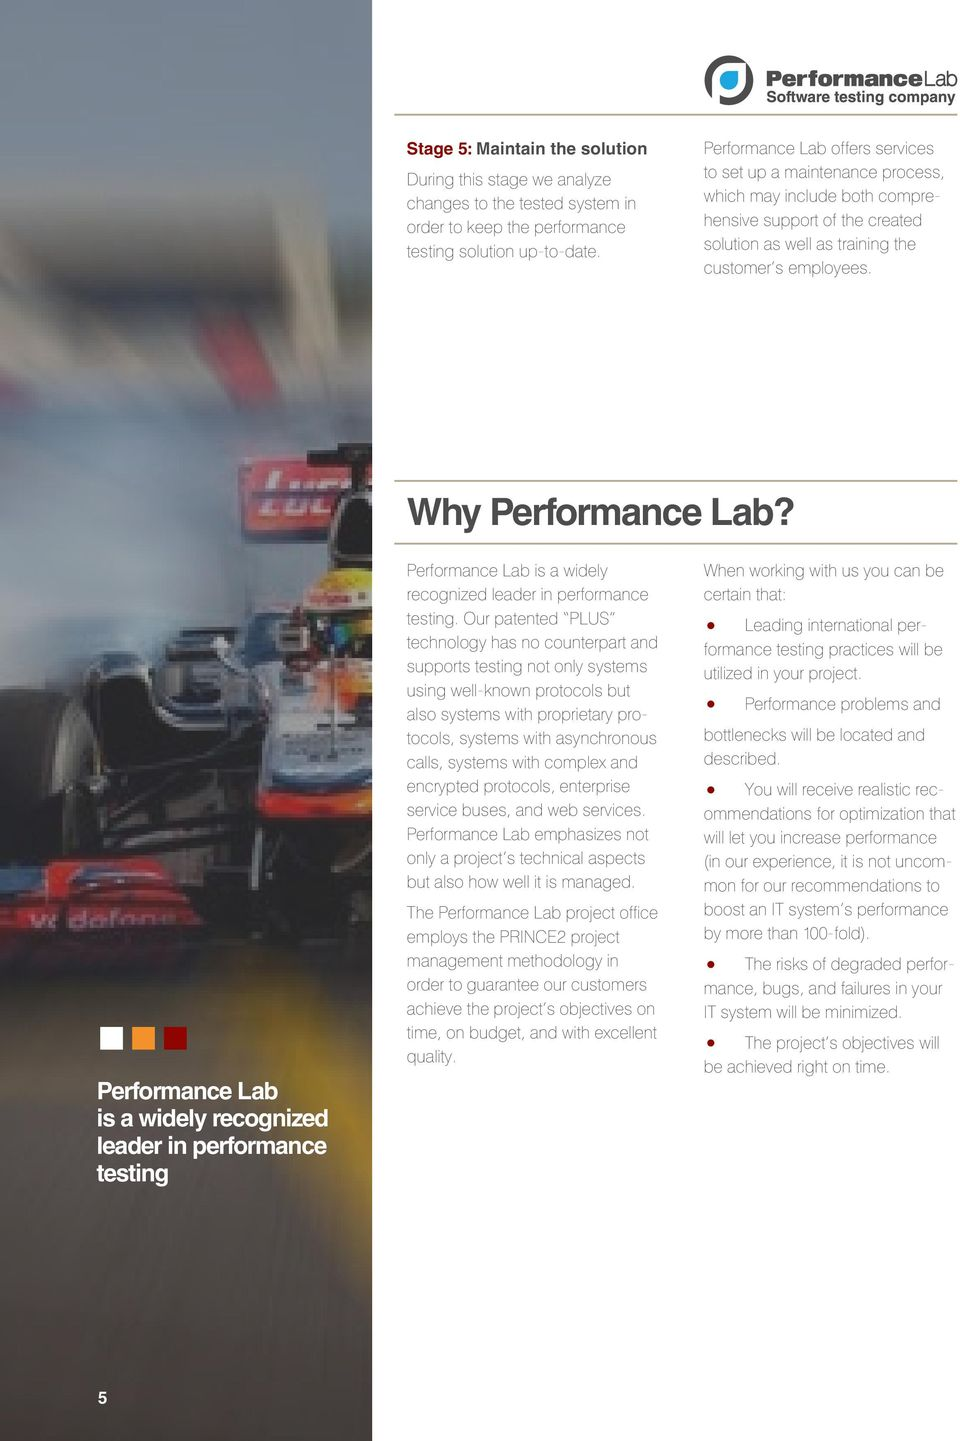 Performance Lab is a widely recognized leader in performance testing Performance Lab is a widely recognized leader in performance testing.